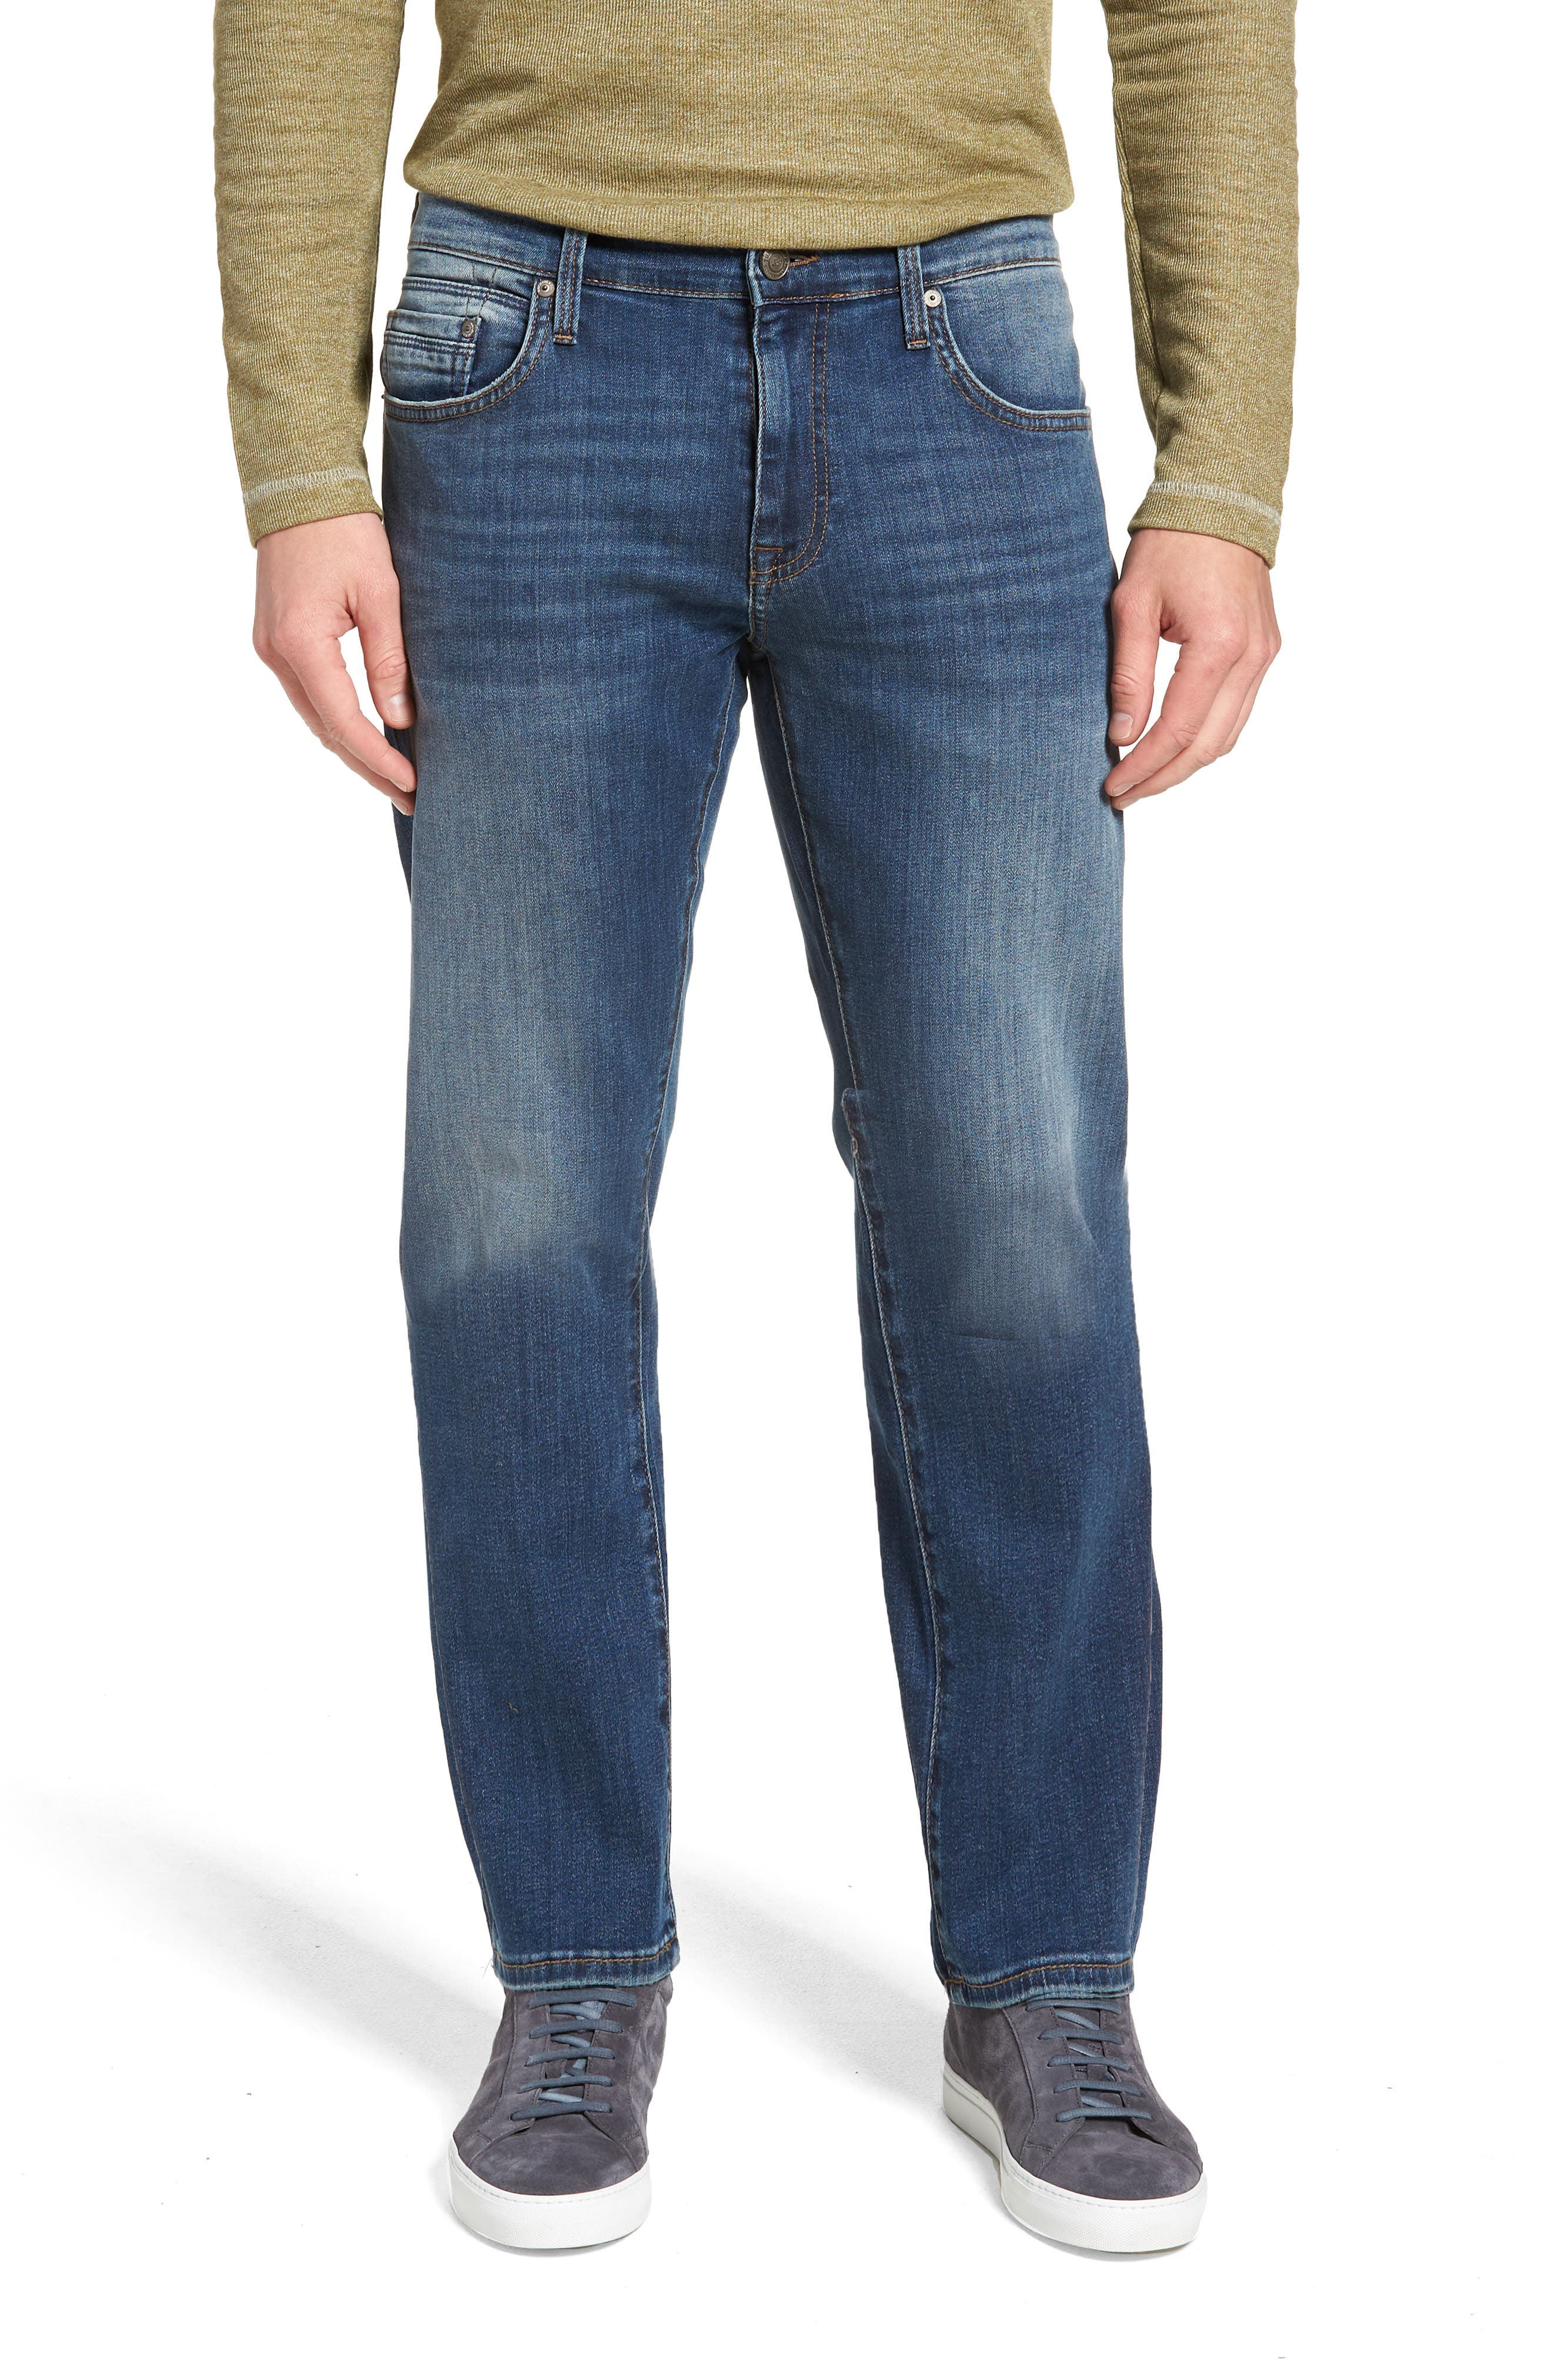 Zach Straight Leg Jeans,                             Main thumbnail 1, color,                             MID USED CAPITOL HILL